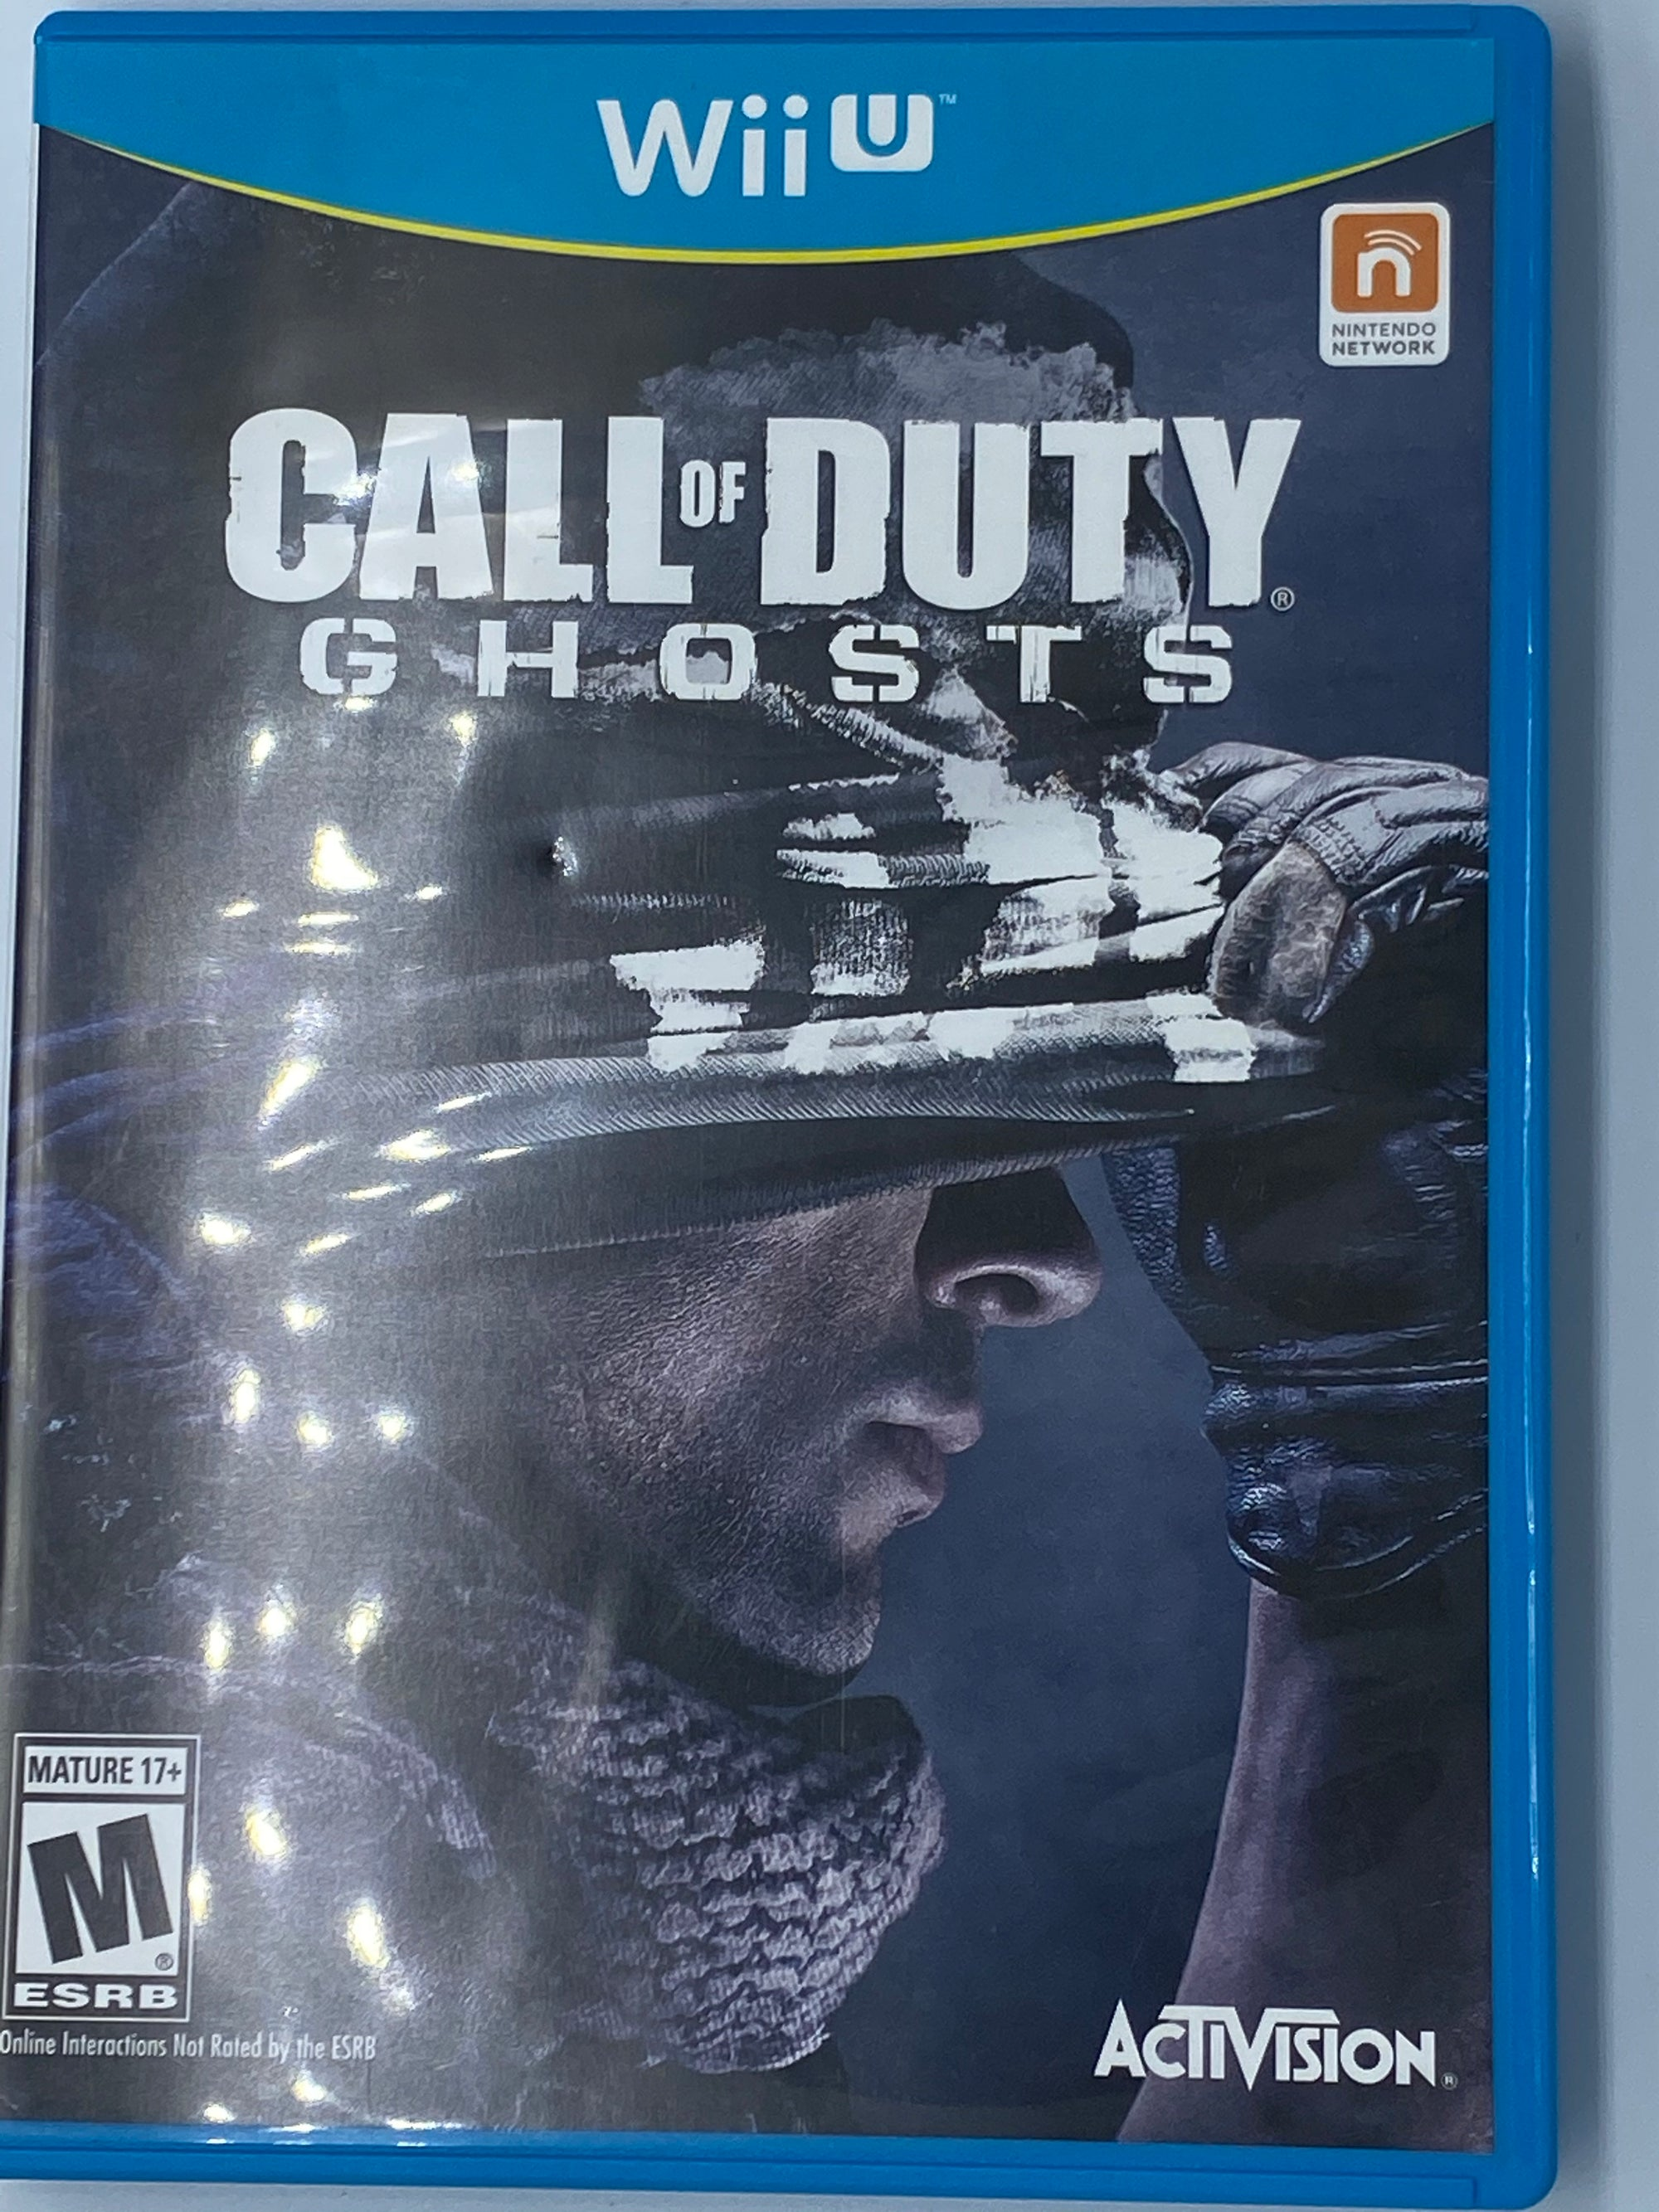 CALL OF DUTY GHOSTS - NINTENDO WII U - USED GAMES